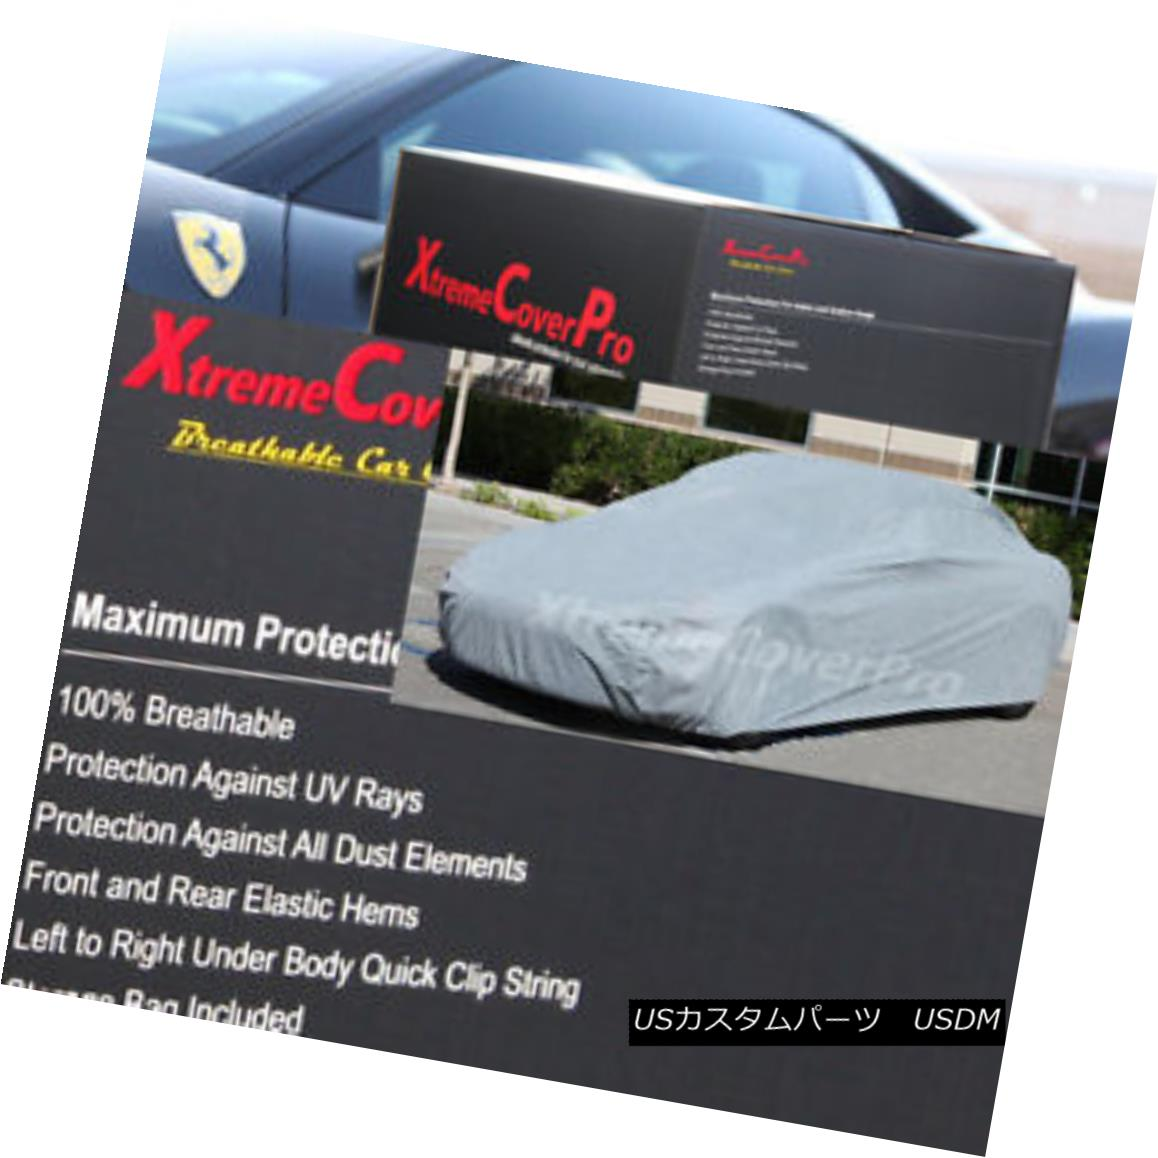 カーカバー 2014 Audi TT Breathable Car Cover 2014 Audi TT通気性車カバー